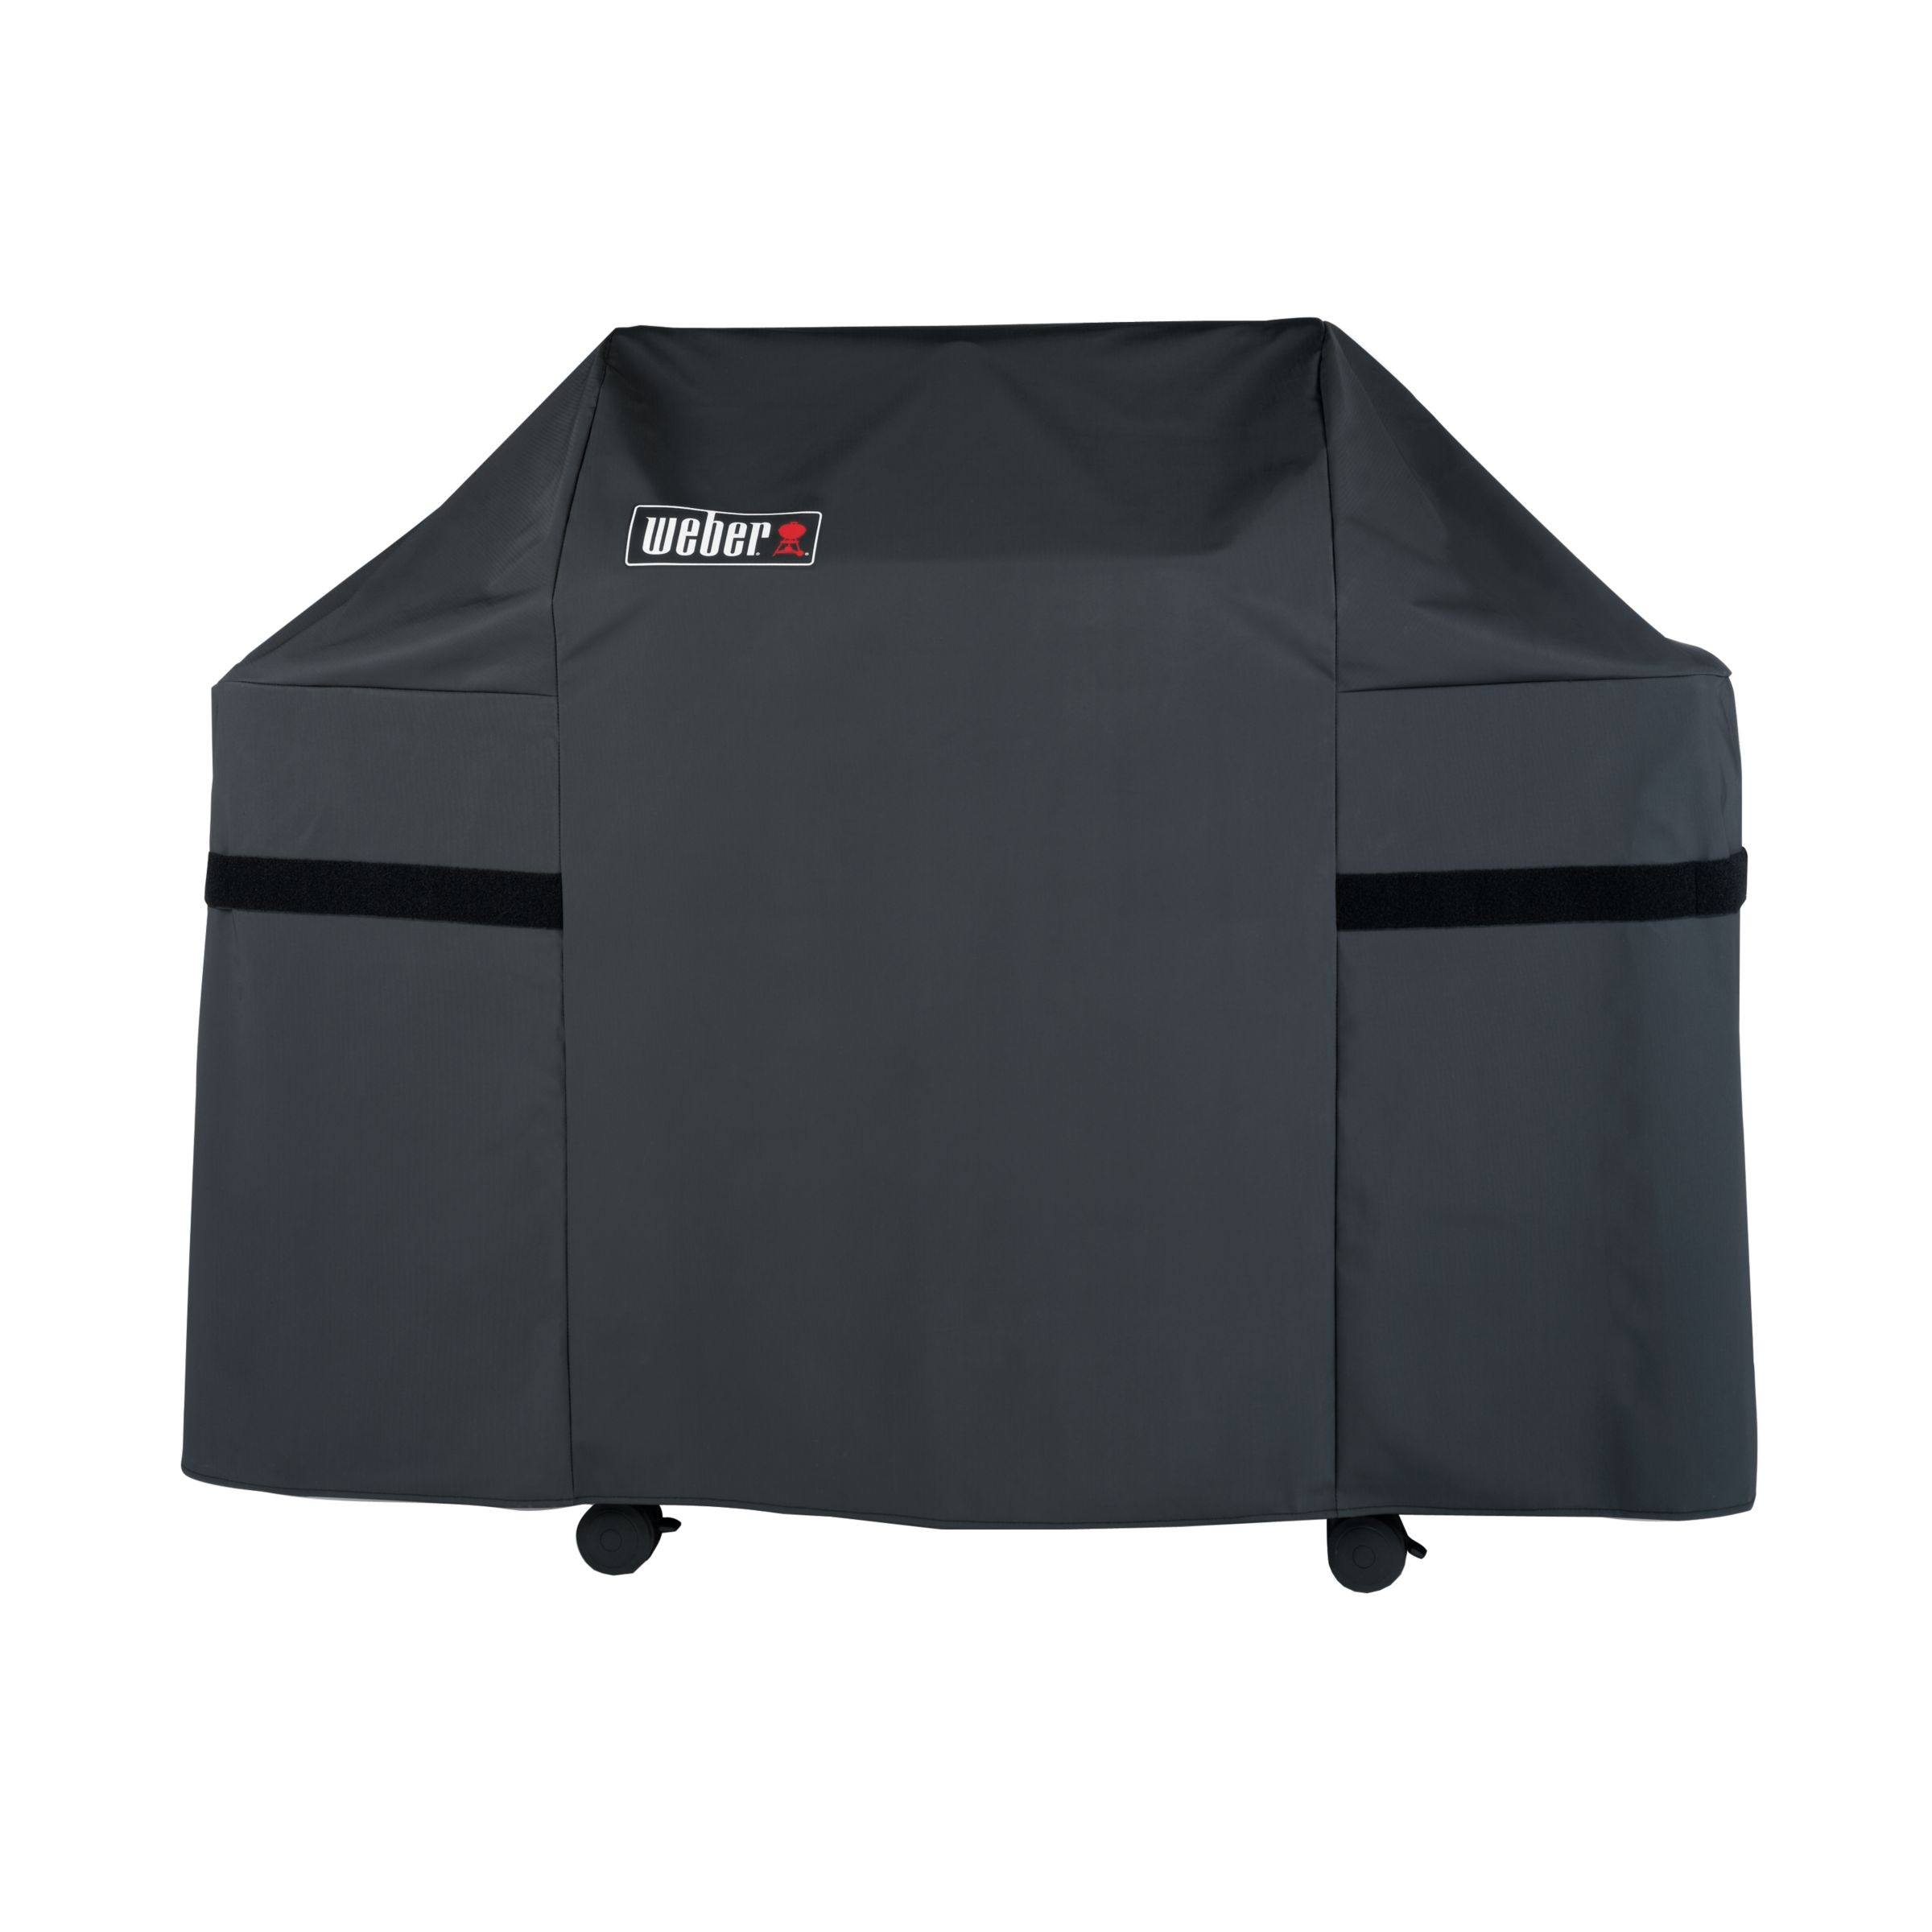 Barbecue Cover for Weber Genesis E320